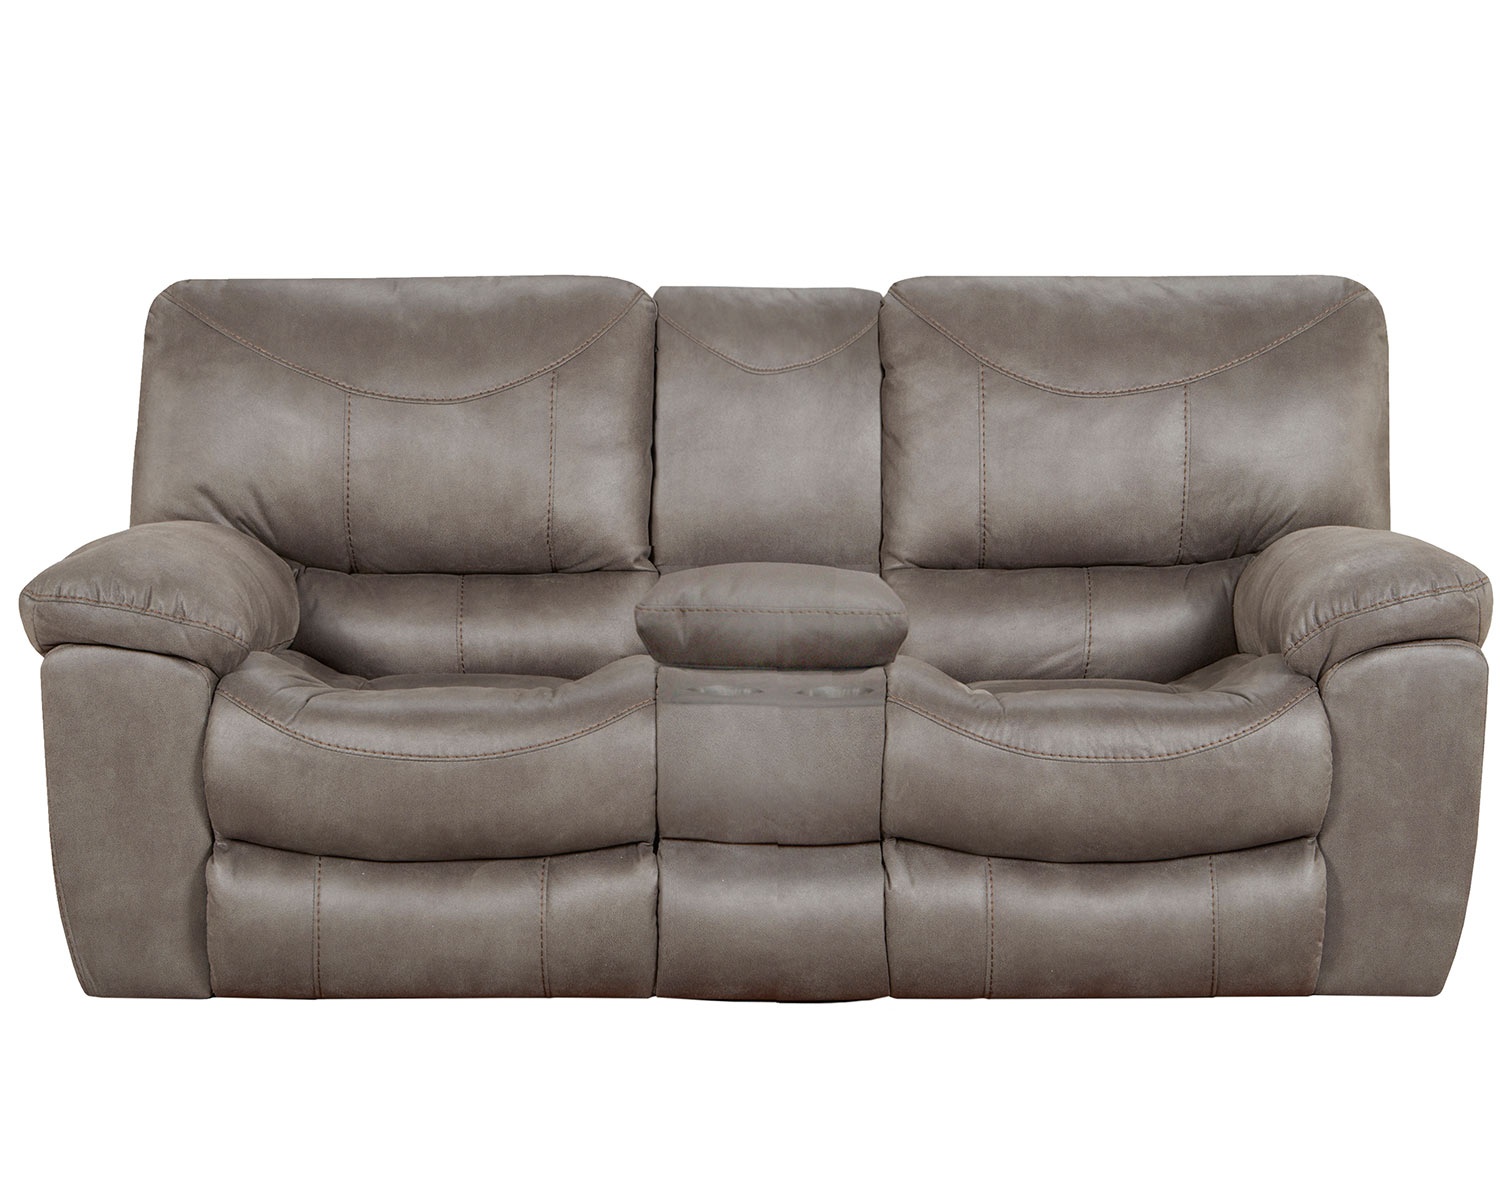 CatNapper Trent Reclining Console Loveseat - Charcoal